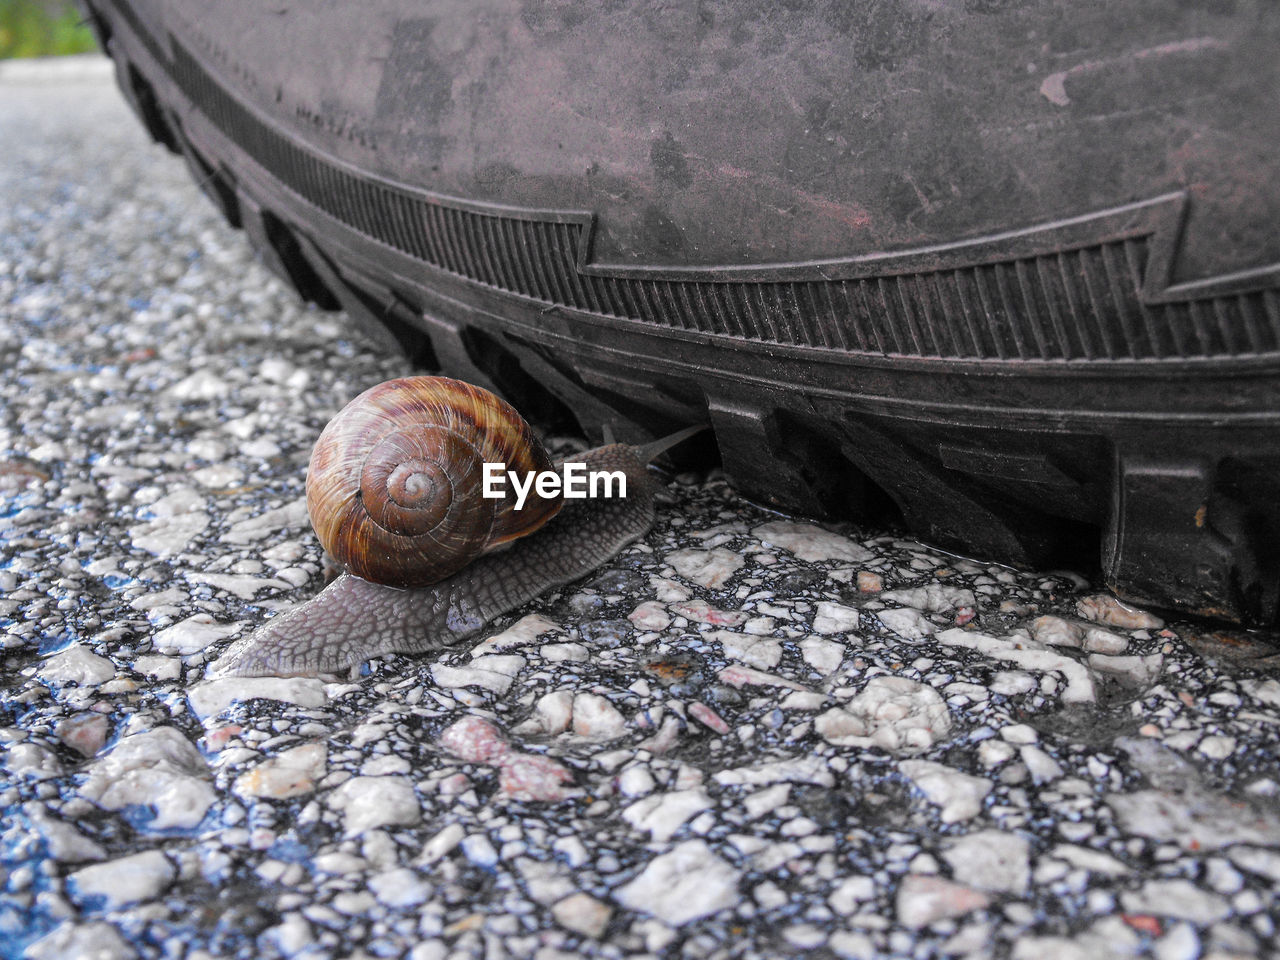 mollusk, animal themes, animal wildlife, animal, gastropod, snail, one animal, invertebrate, shell, animal shell, animals in the wild, day, close-up, no people, animal body part, transportation, nature, outdoors, street, selective focus, small, surface level